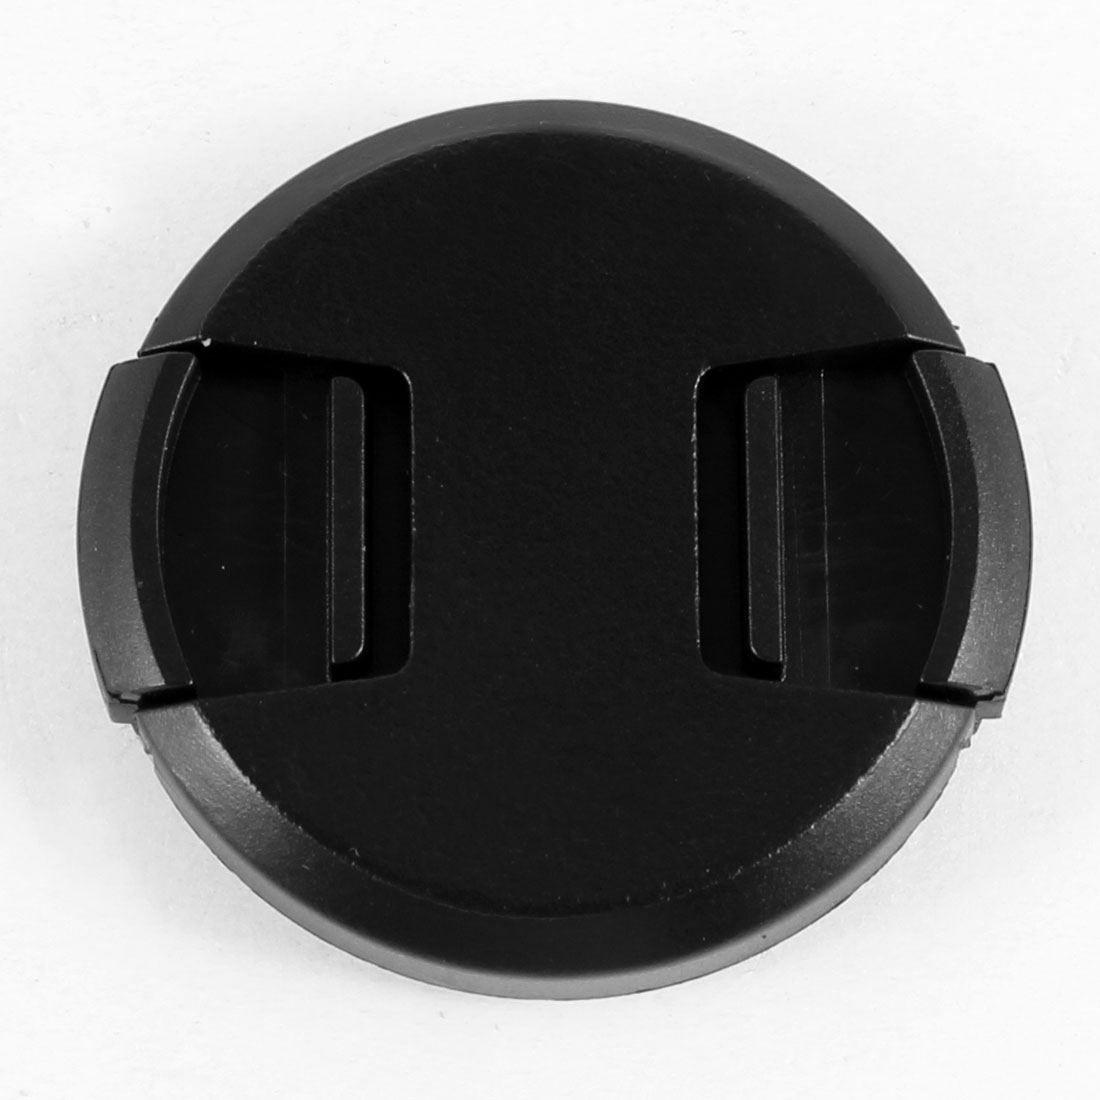 40.5mm Plastic Clip On Front Lens Cap Cover Black for Digital Camera